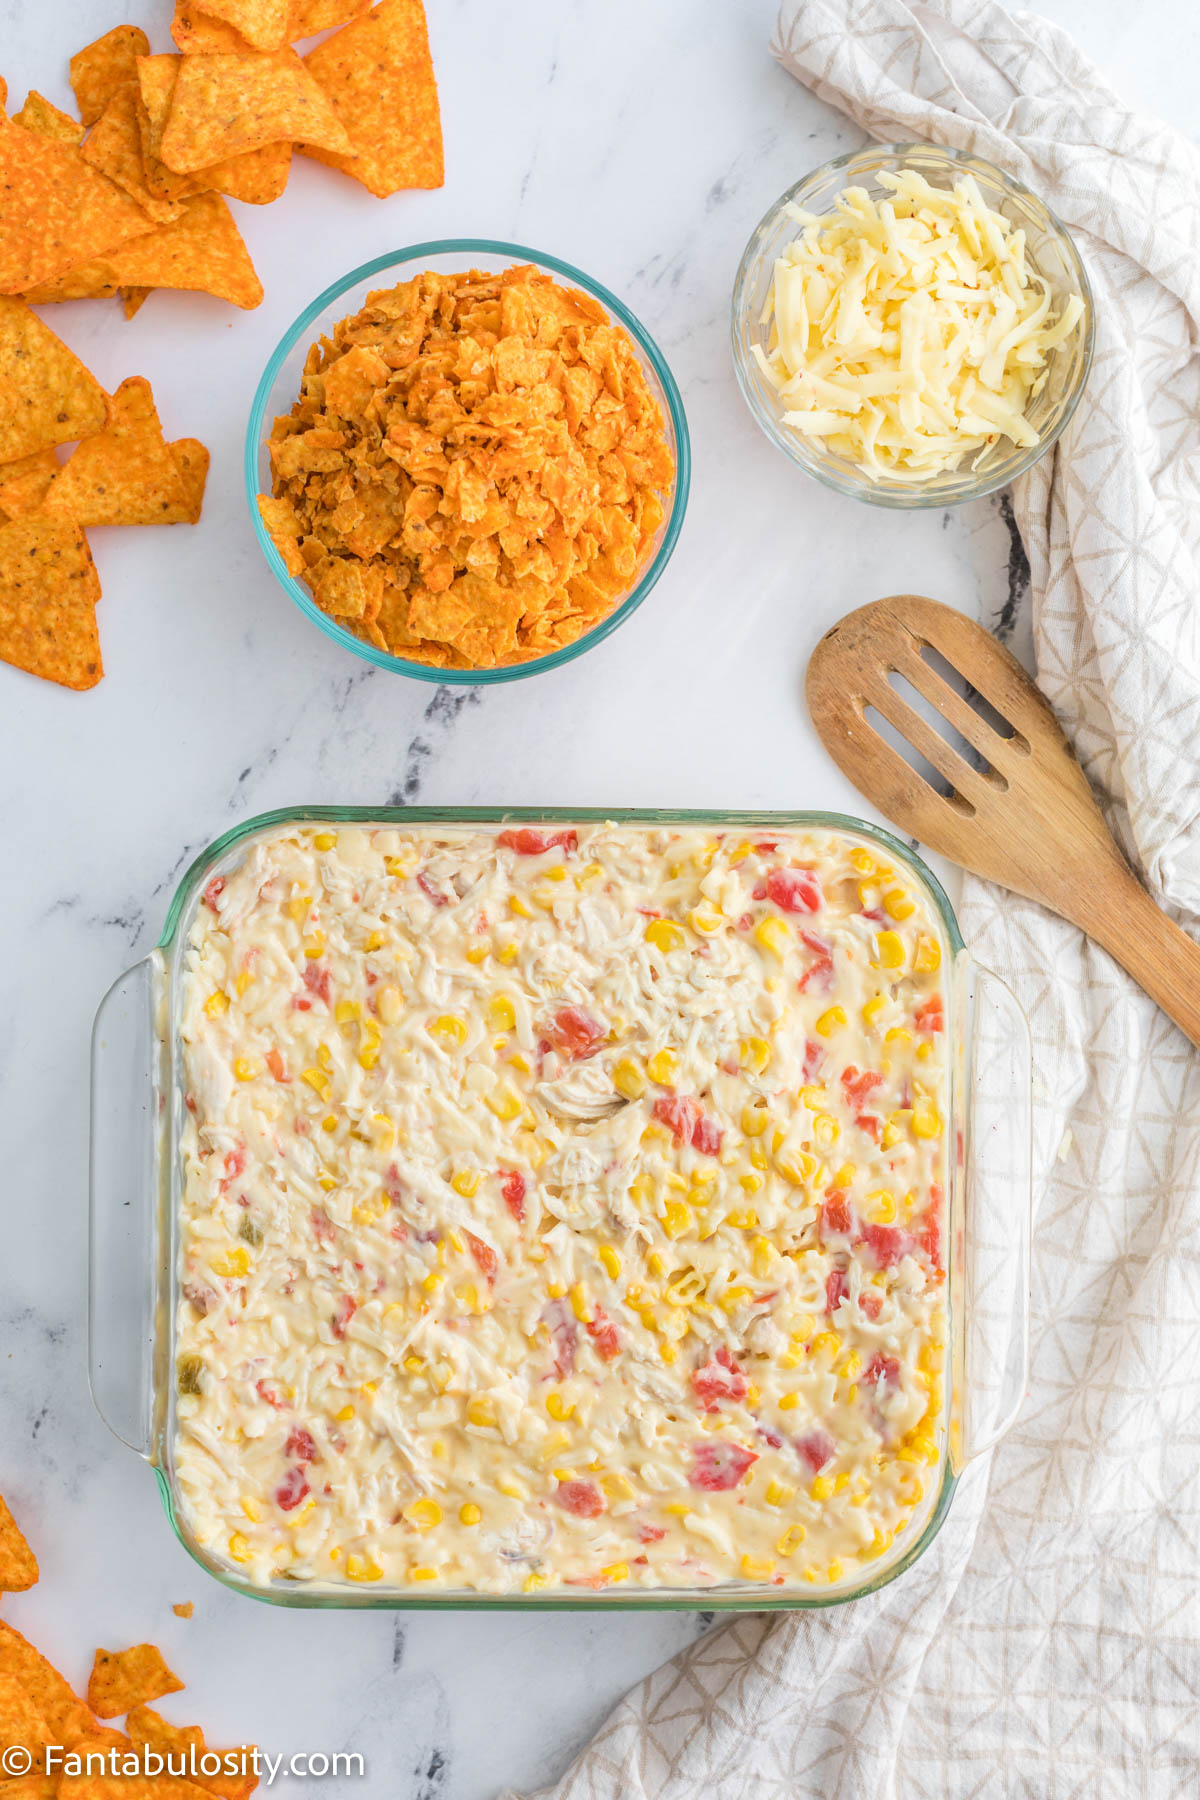 Pour chicken casserole in to baking dish